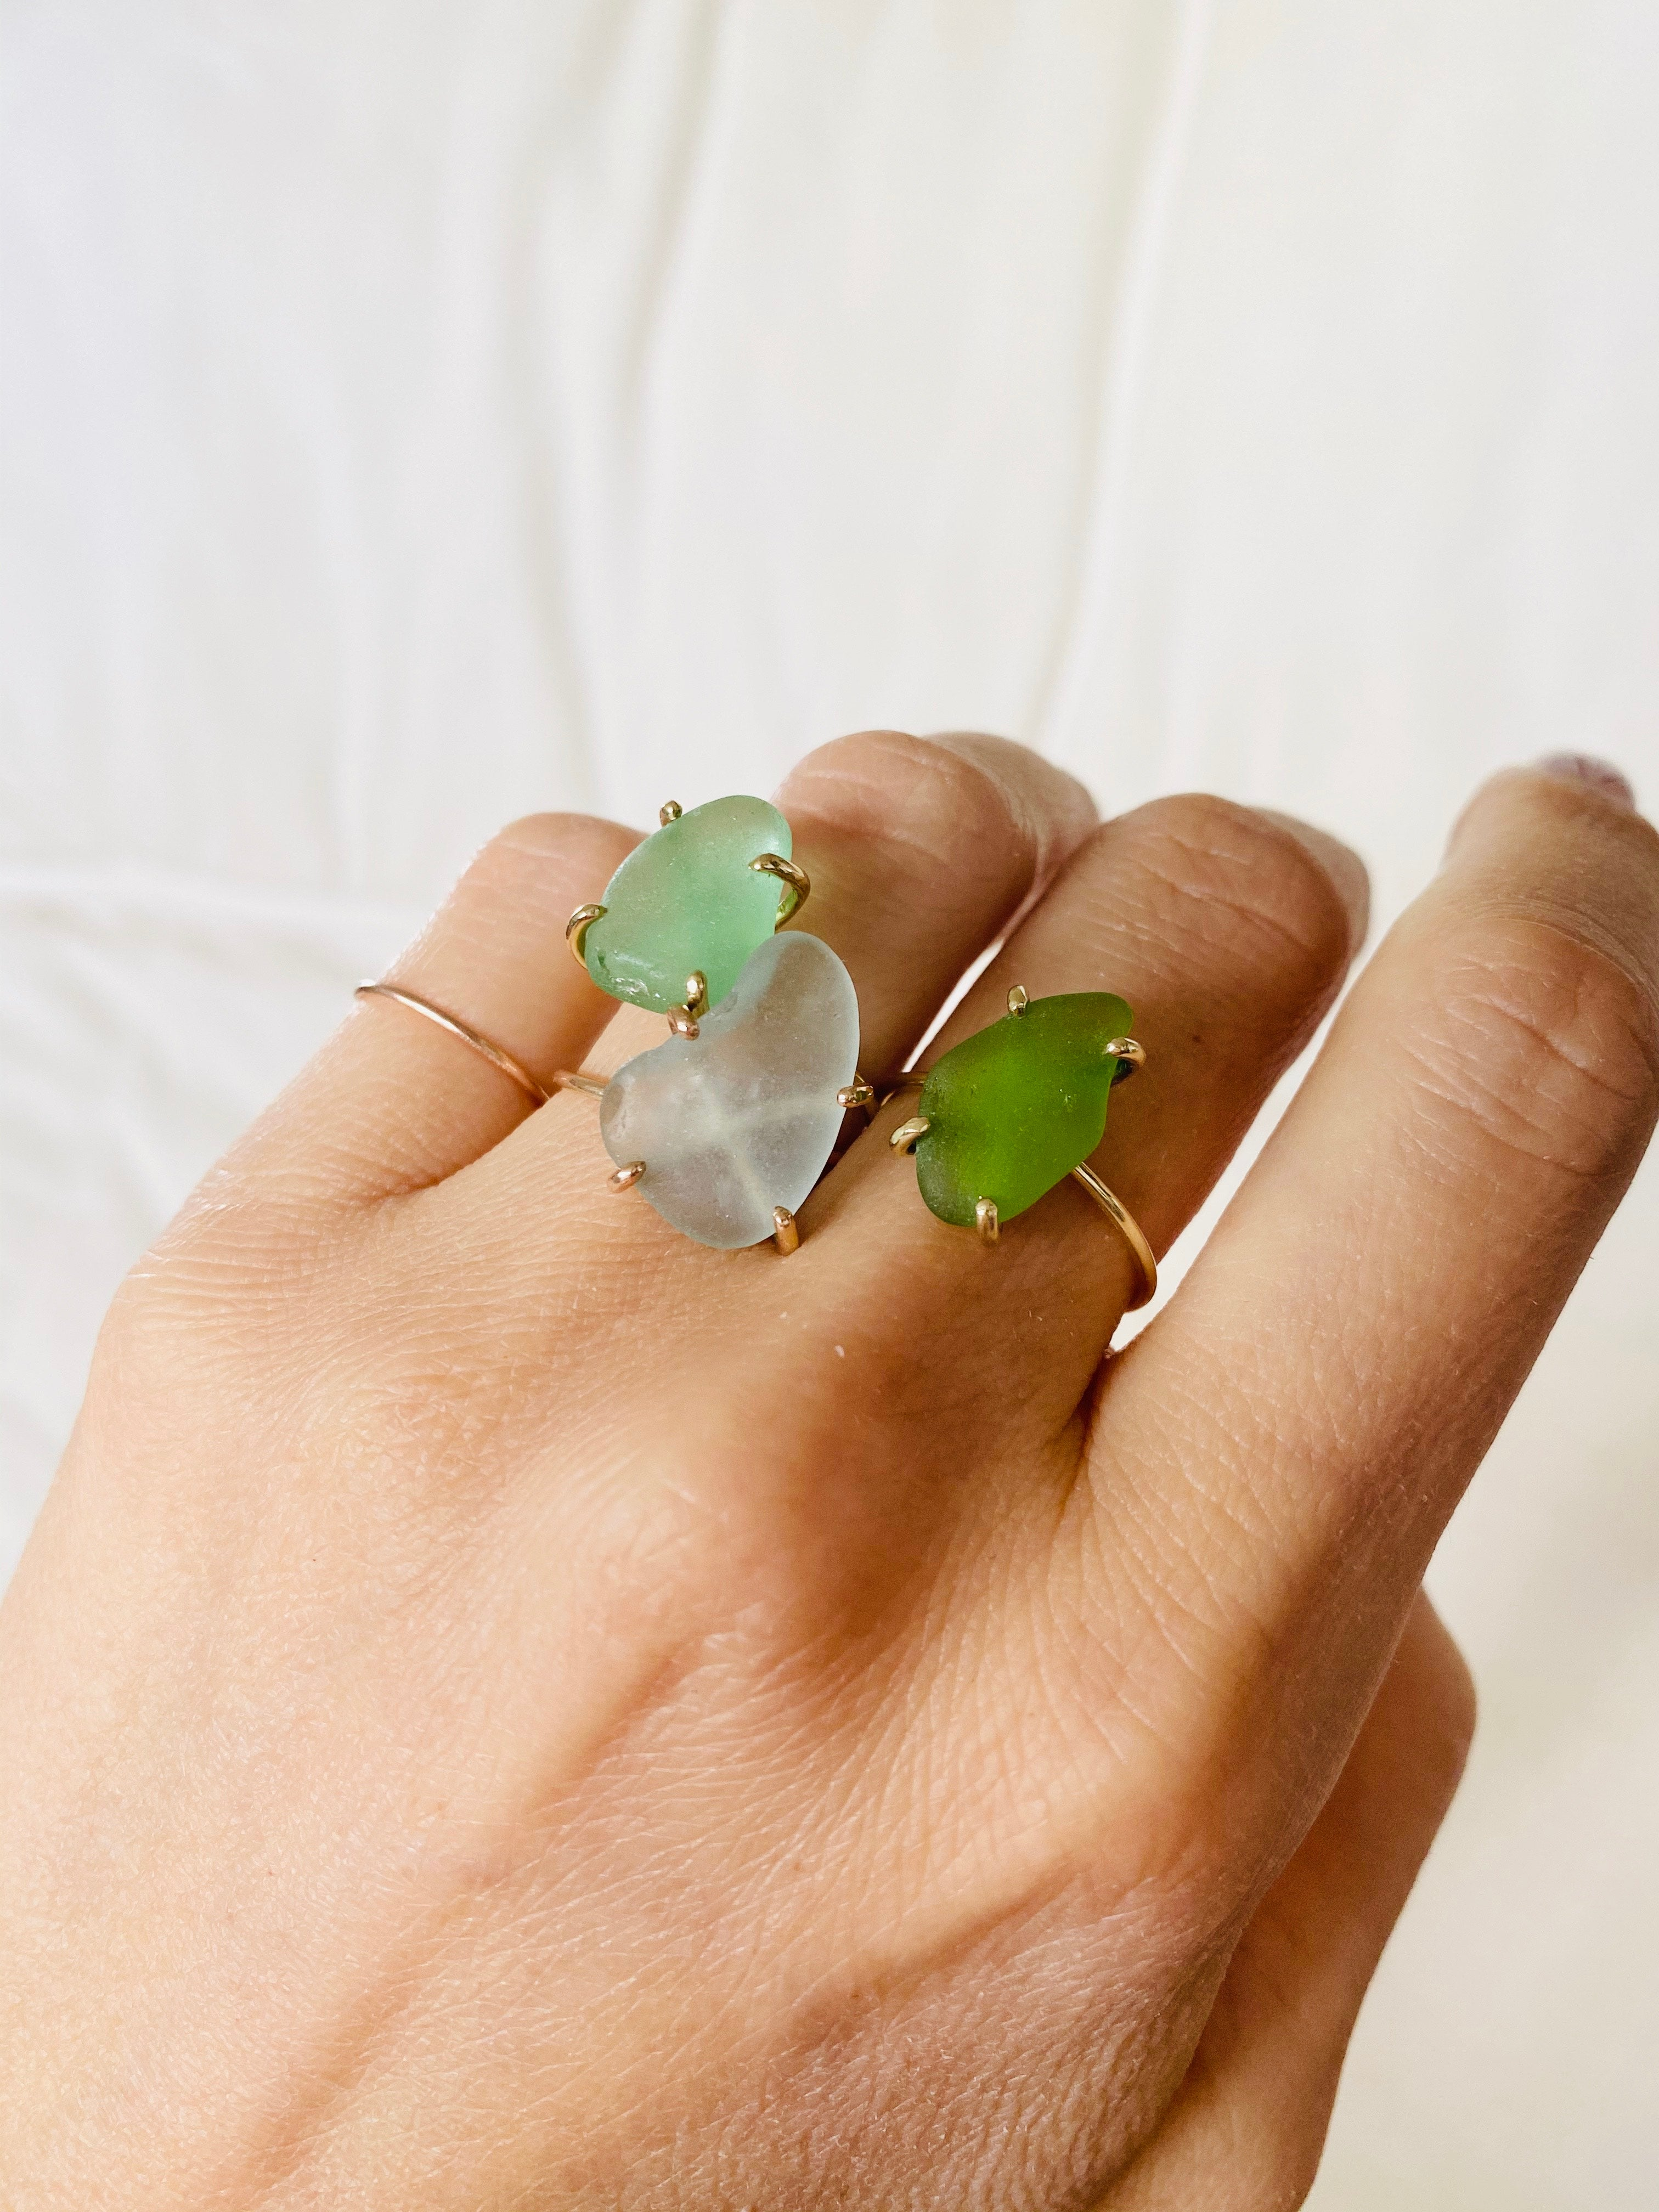 OCEAN GLASS ring - 14K white gold